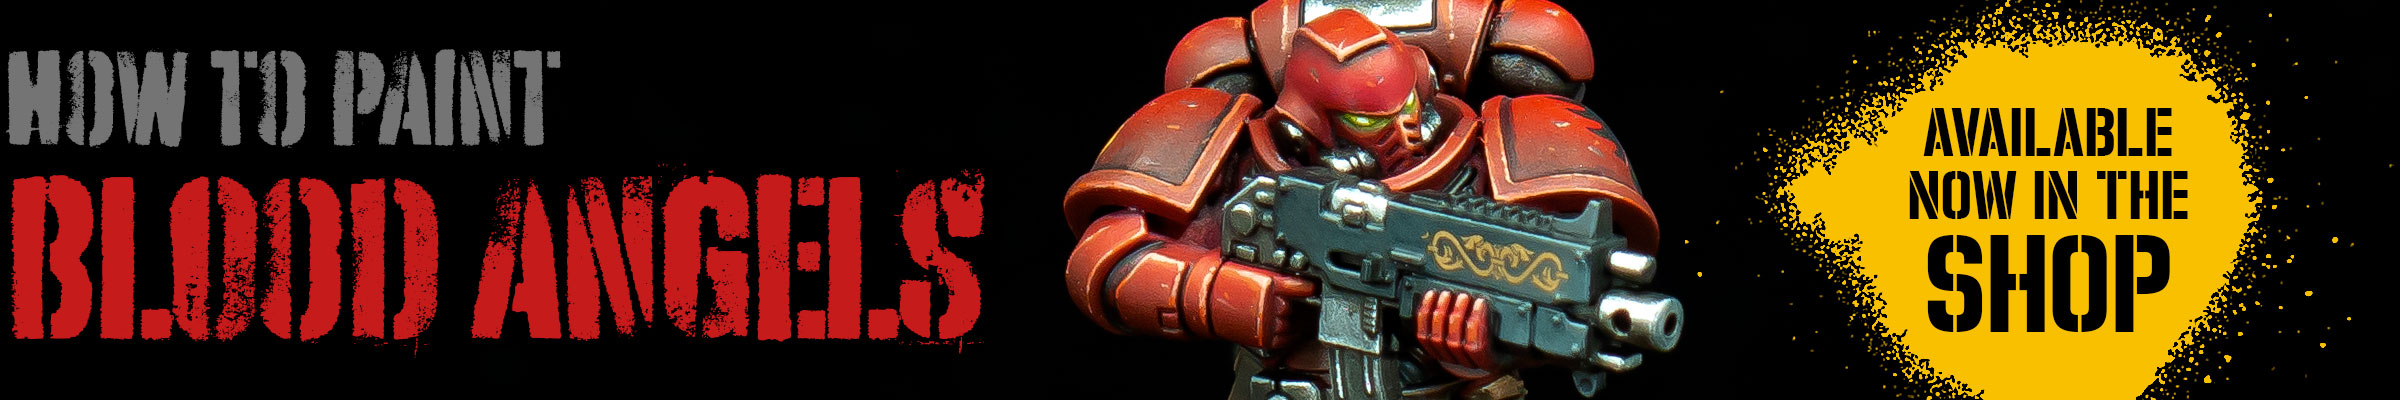 How to paint Blood Angels – PDF painting guide now available in the shop